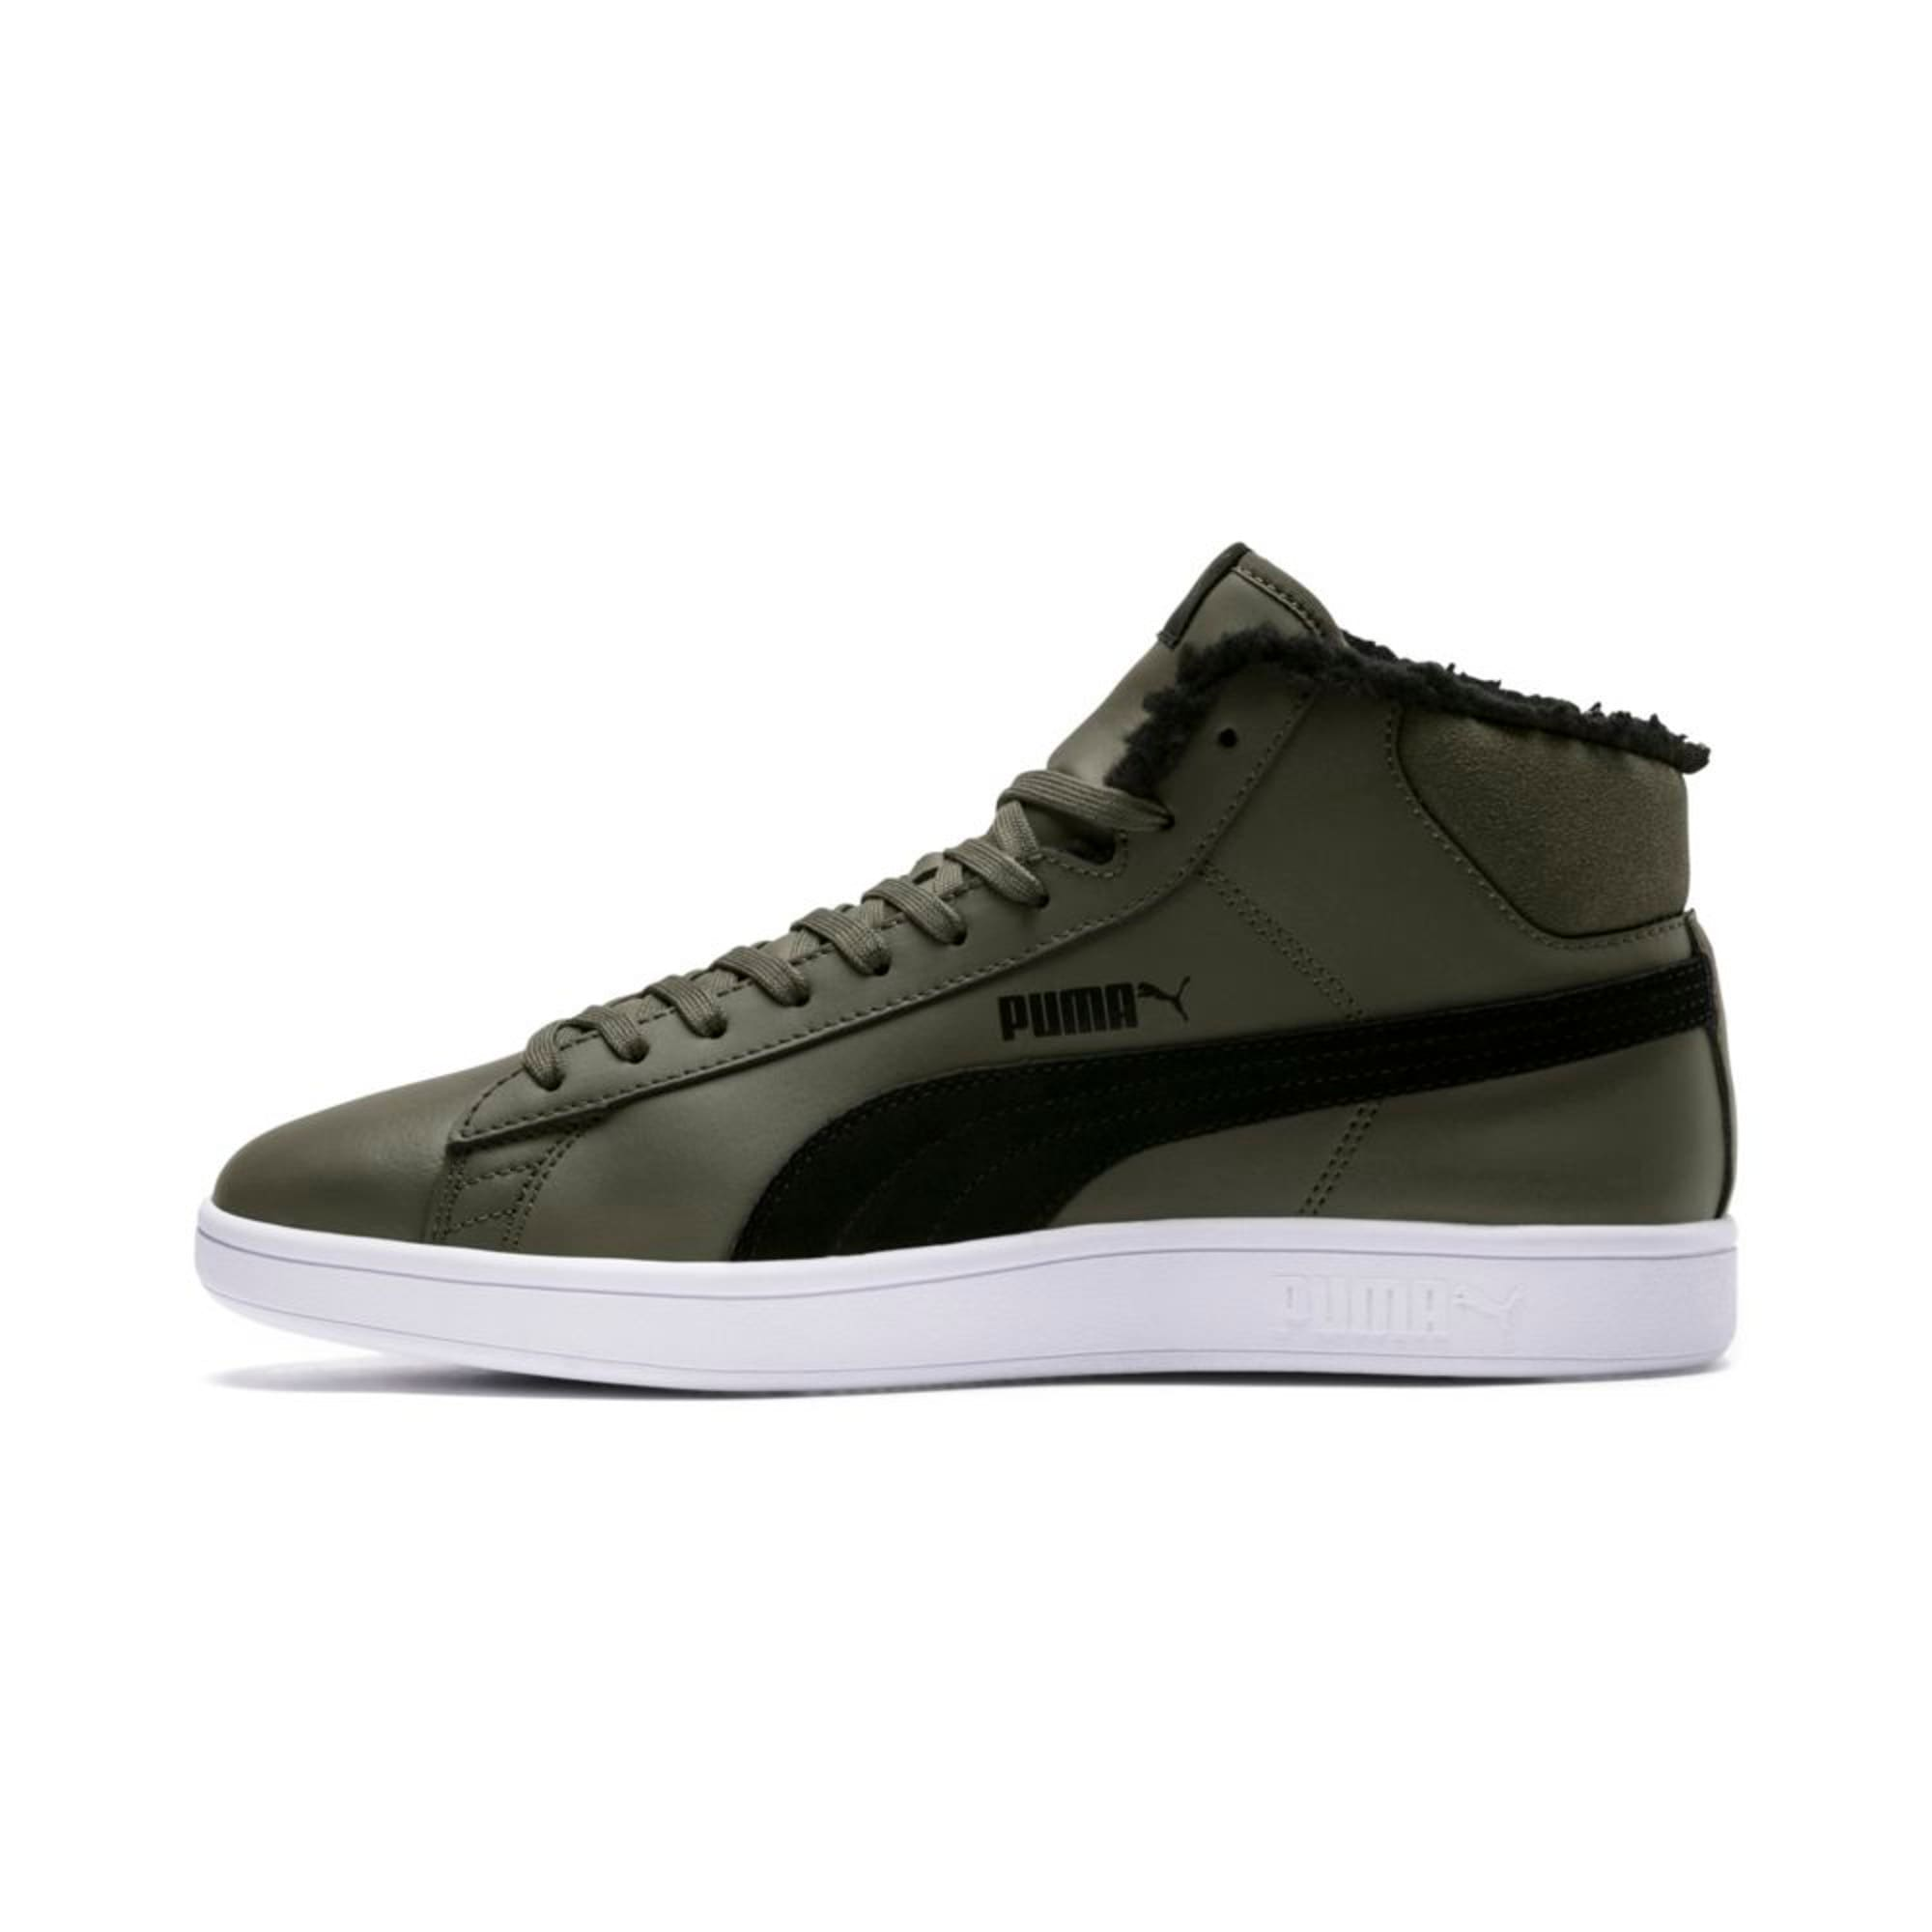 Thumbnail 1 of Smash v2 Mid Winterized Leather High Tops, Forest Night-Puma Black, medium-IND